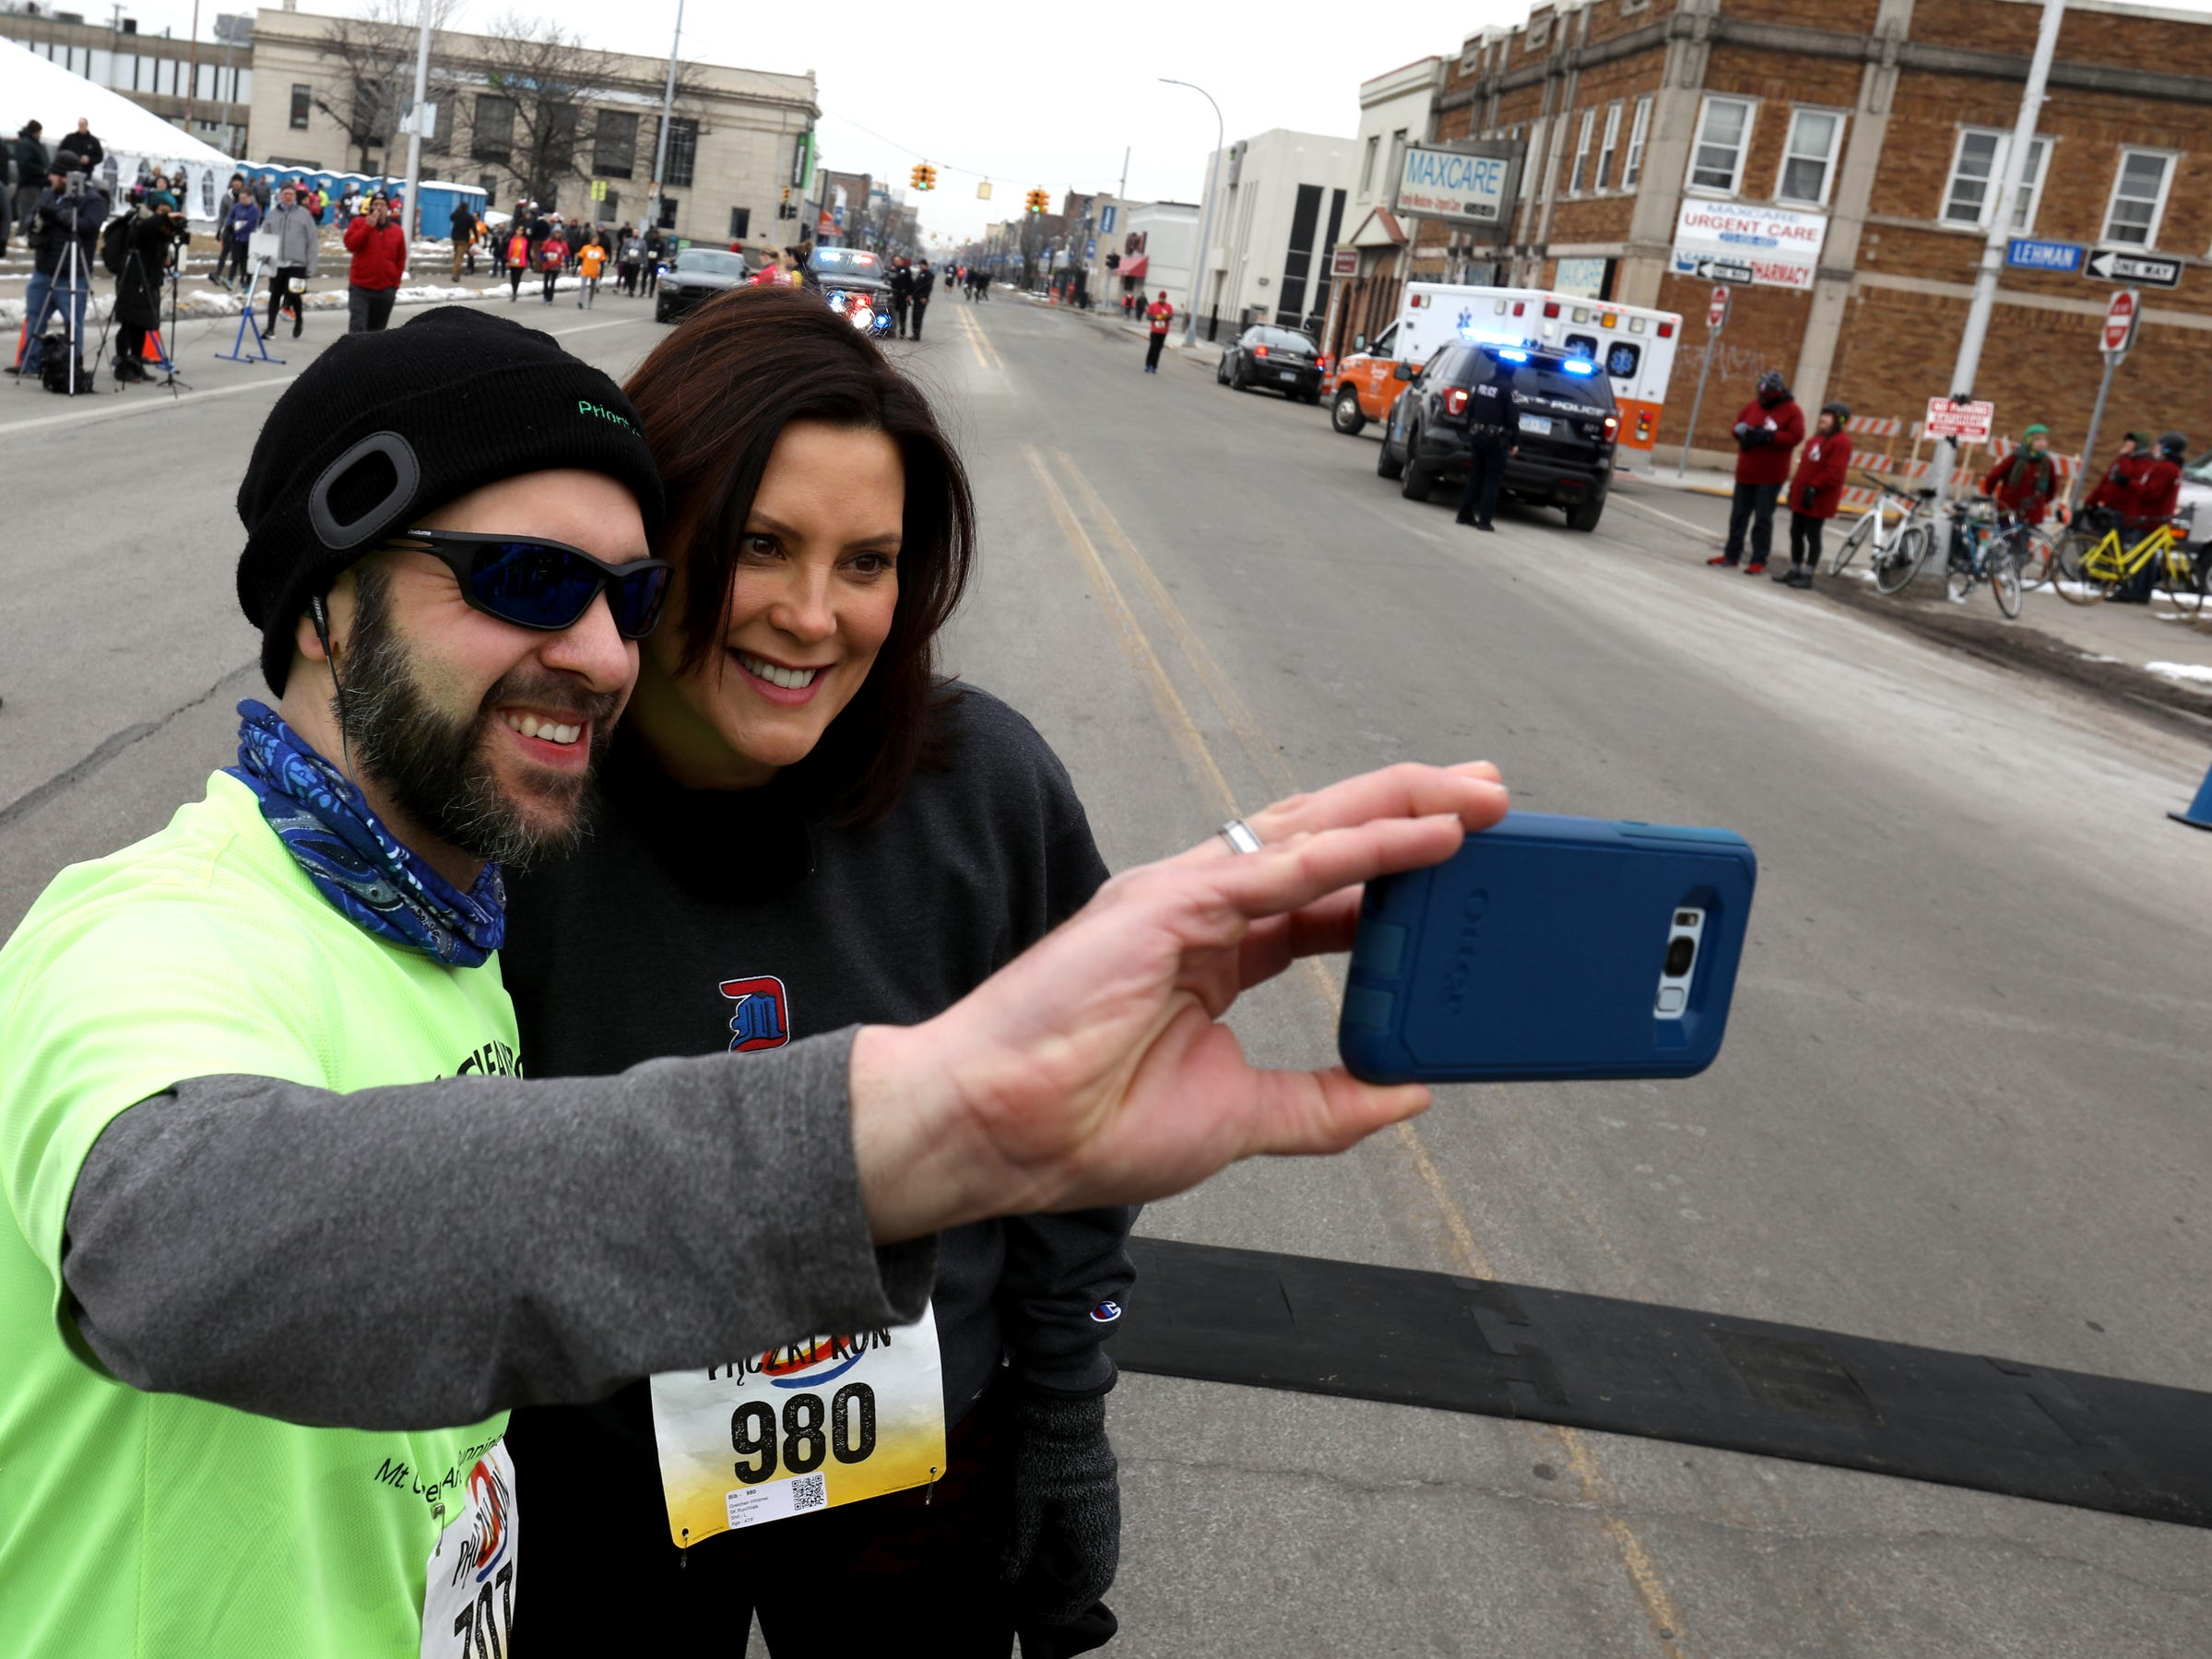 Before the start of the 2019 Paczki 5K run in downtown Hamtramck on Saturday, March 2, 2019 runner Jason Davidson, 40 of Clinton Township takes a selfie with Governor Gretchen Whitmer.